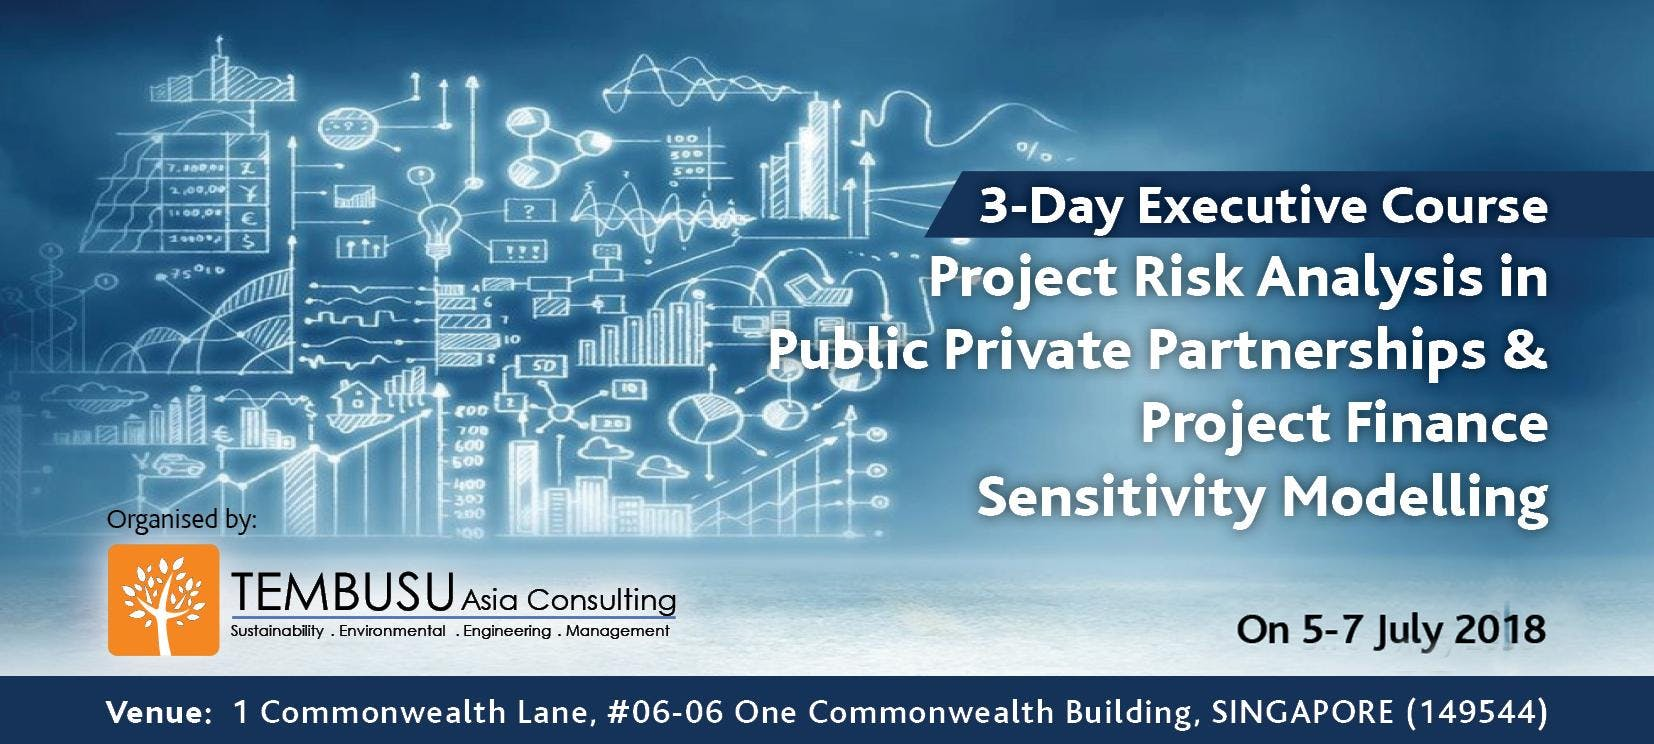 3 Day Executive Course on Project Risk Analysis in PPP&Project Finance Modelling